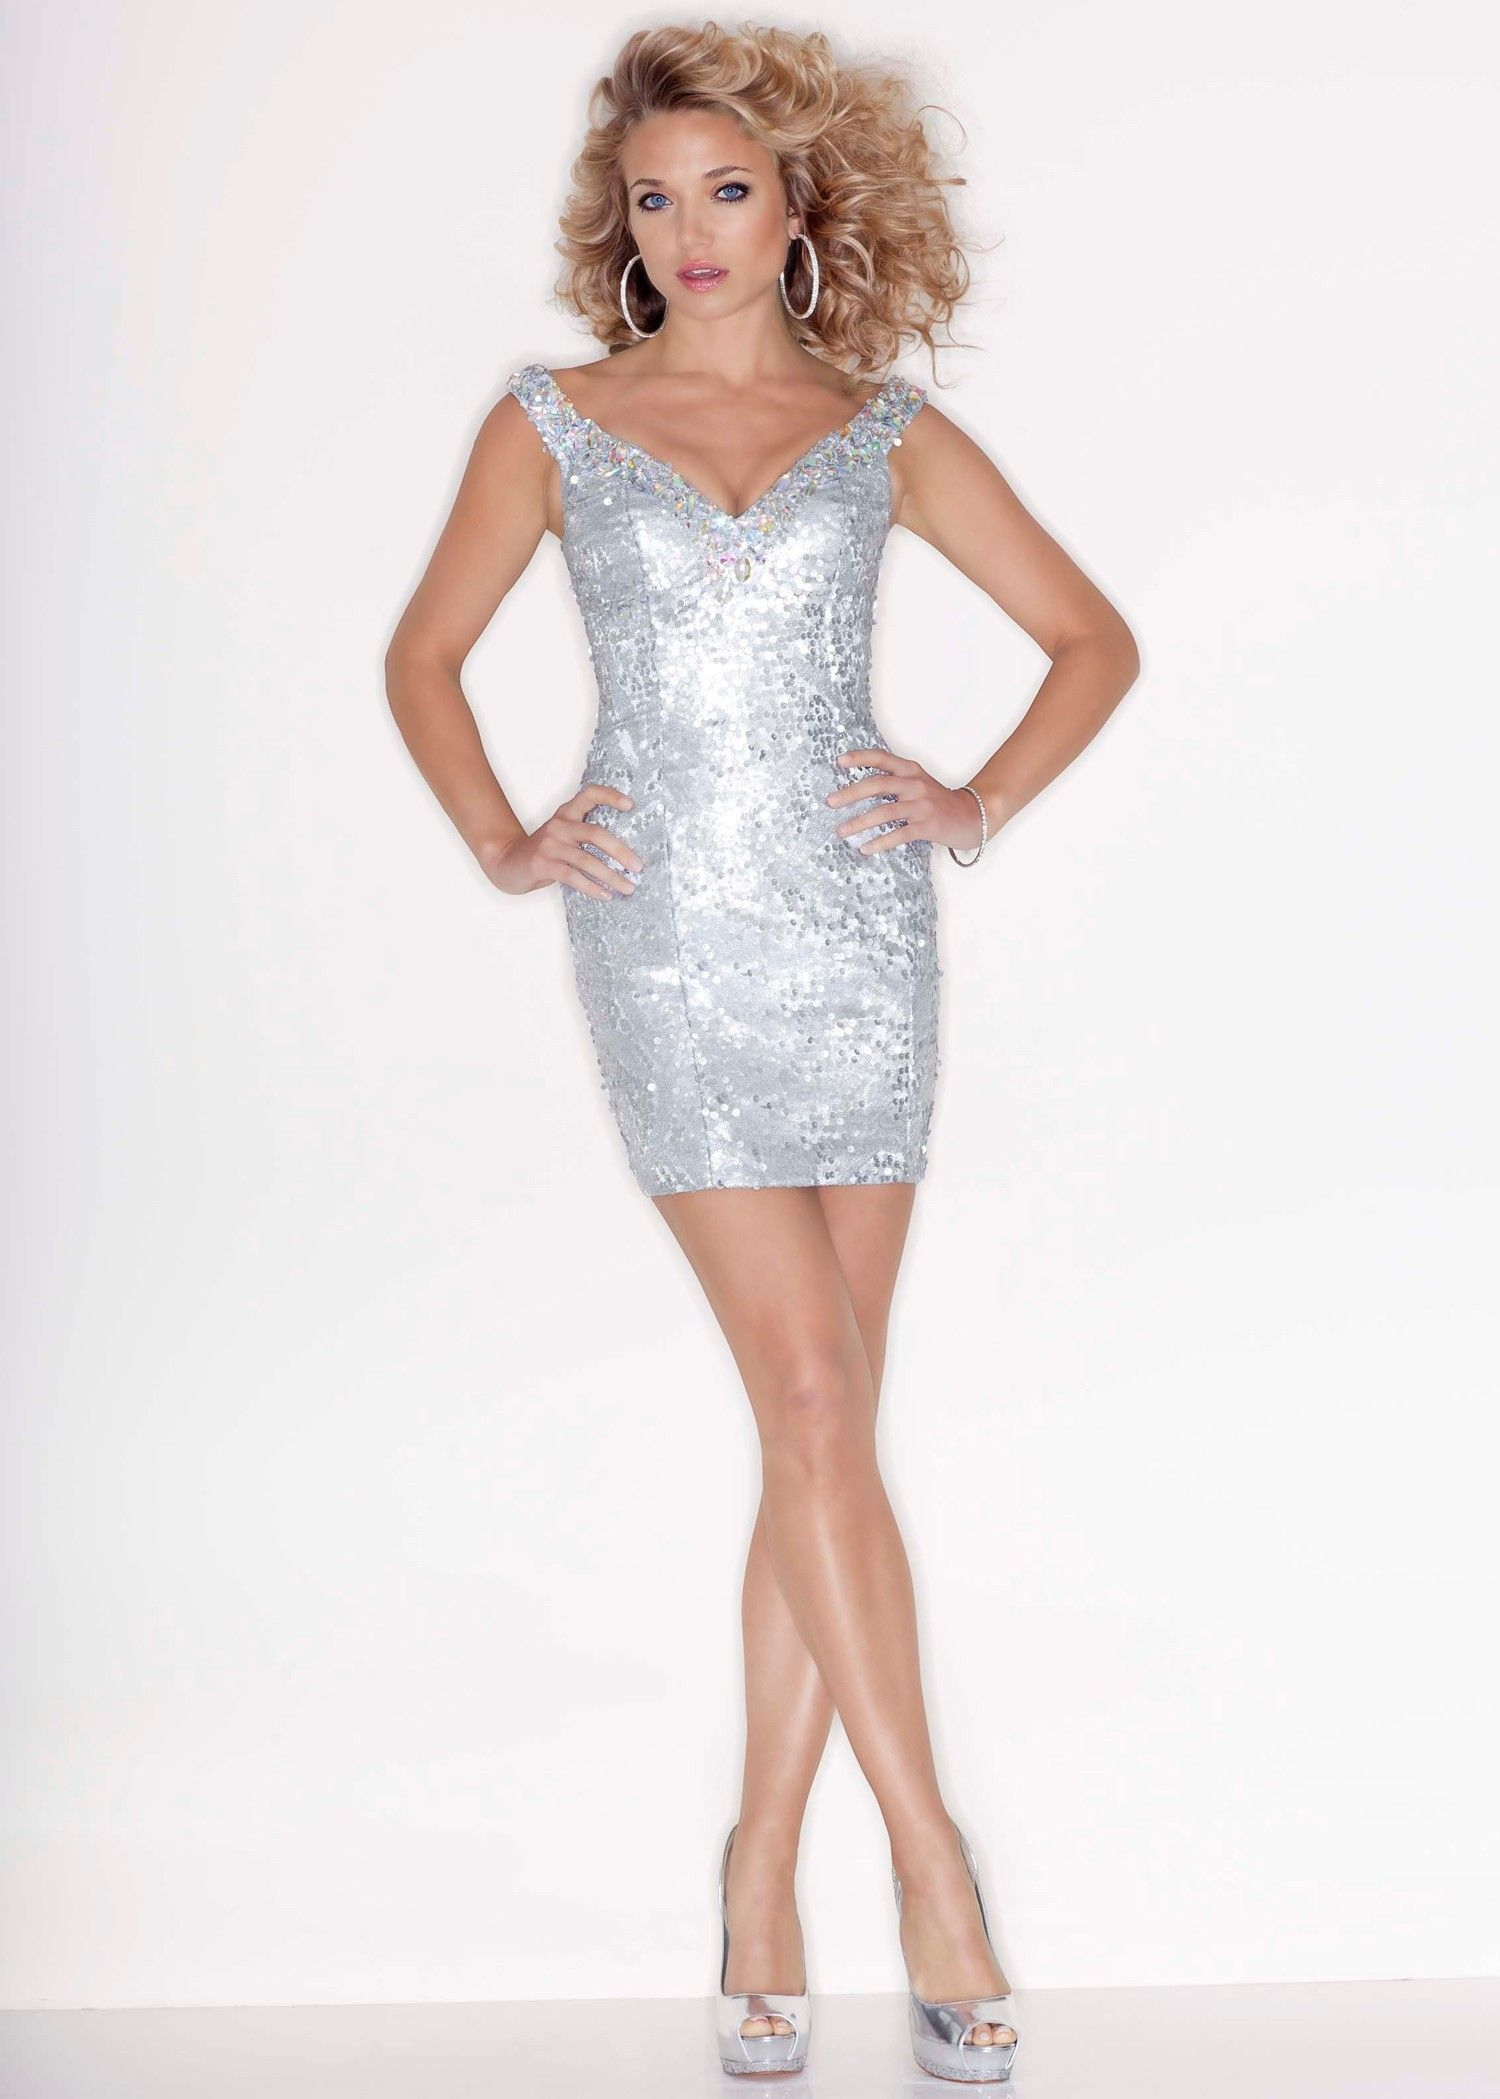 Beaded Silver Sequins Prom Dress - Sticks and Stones by Mori Lee ...